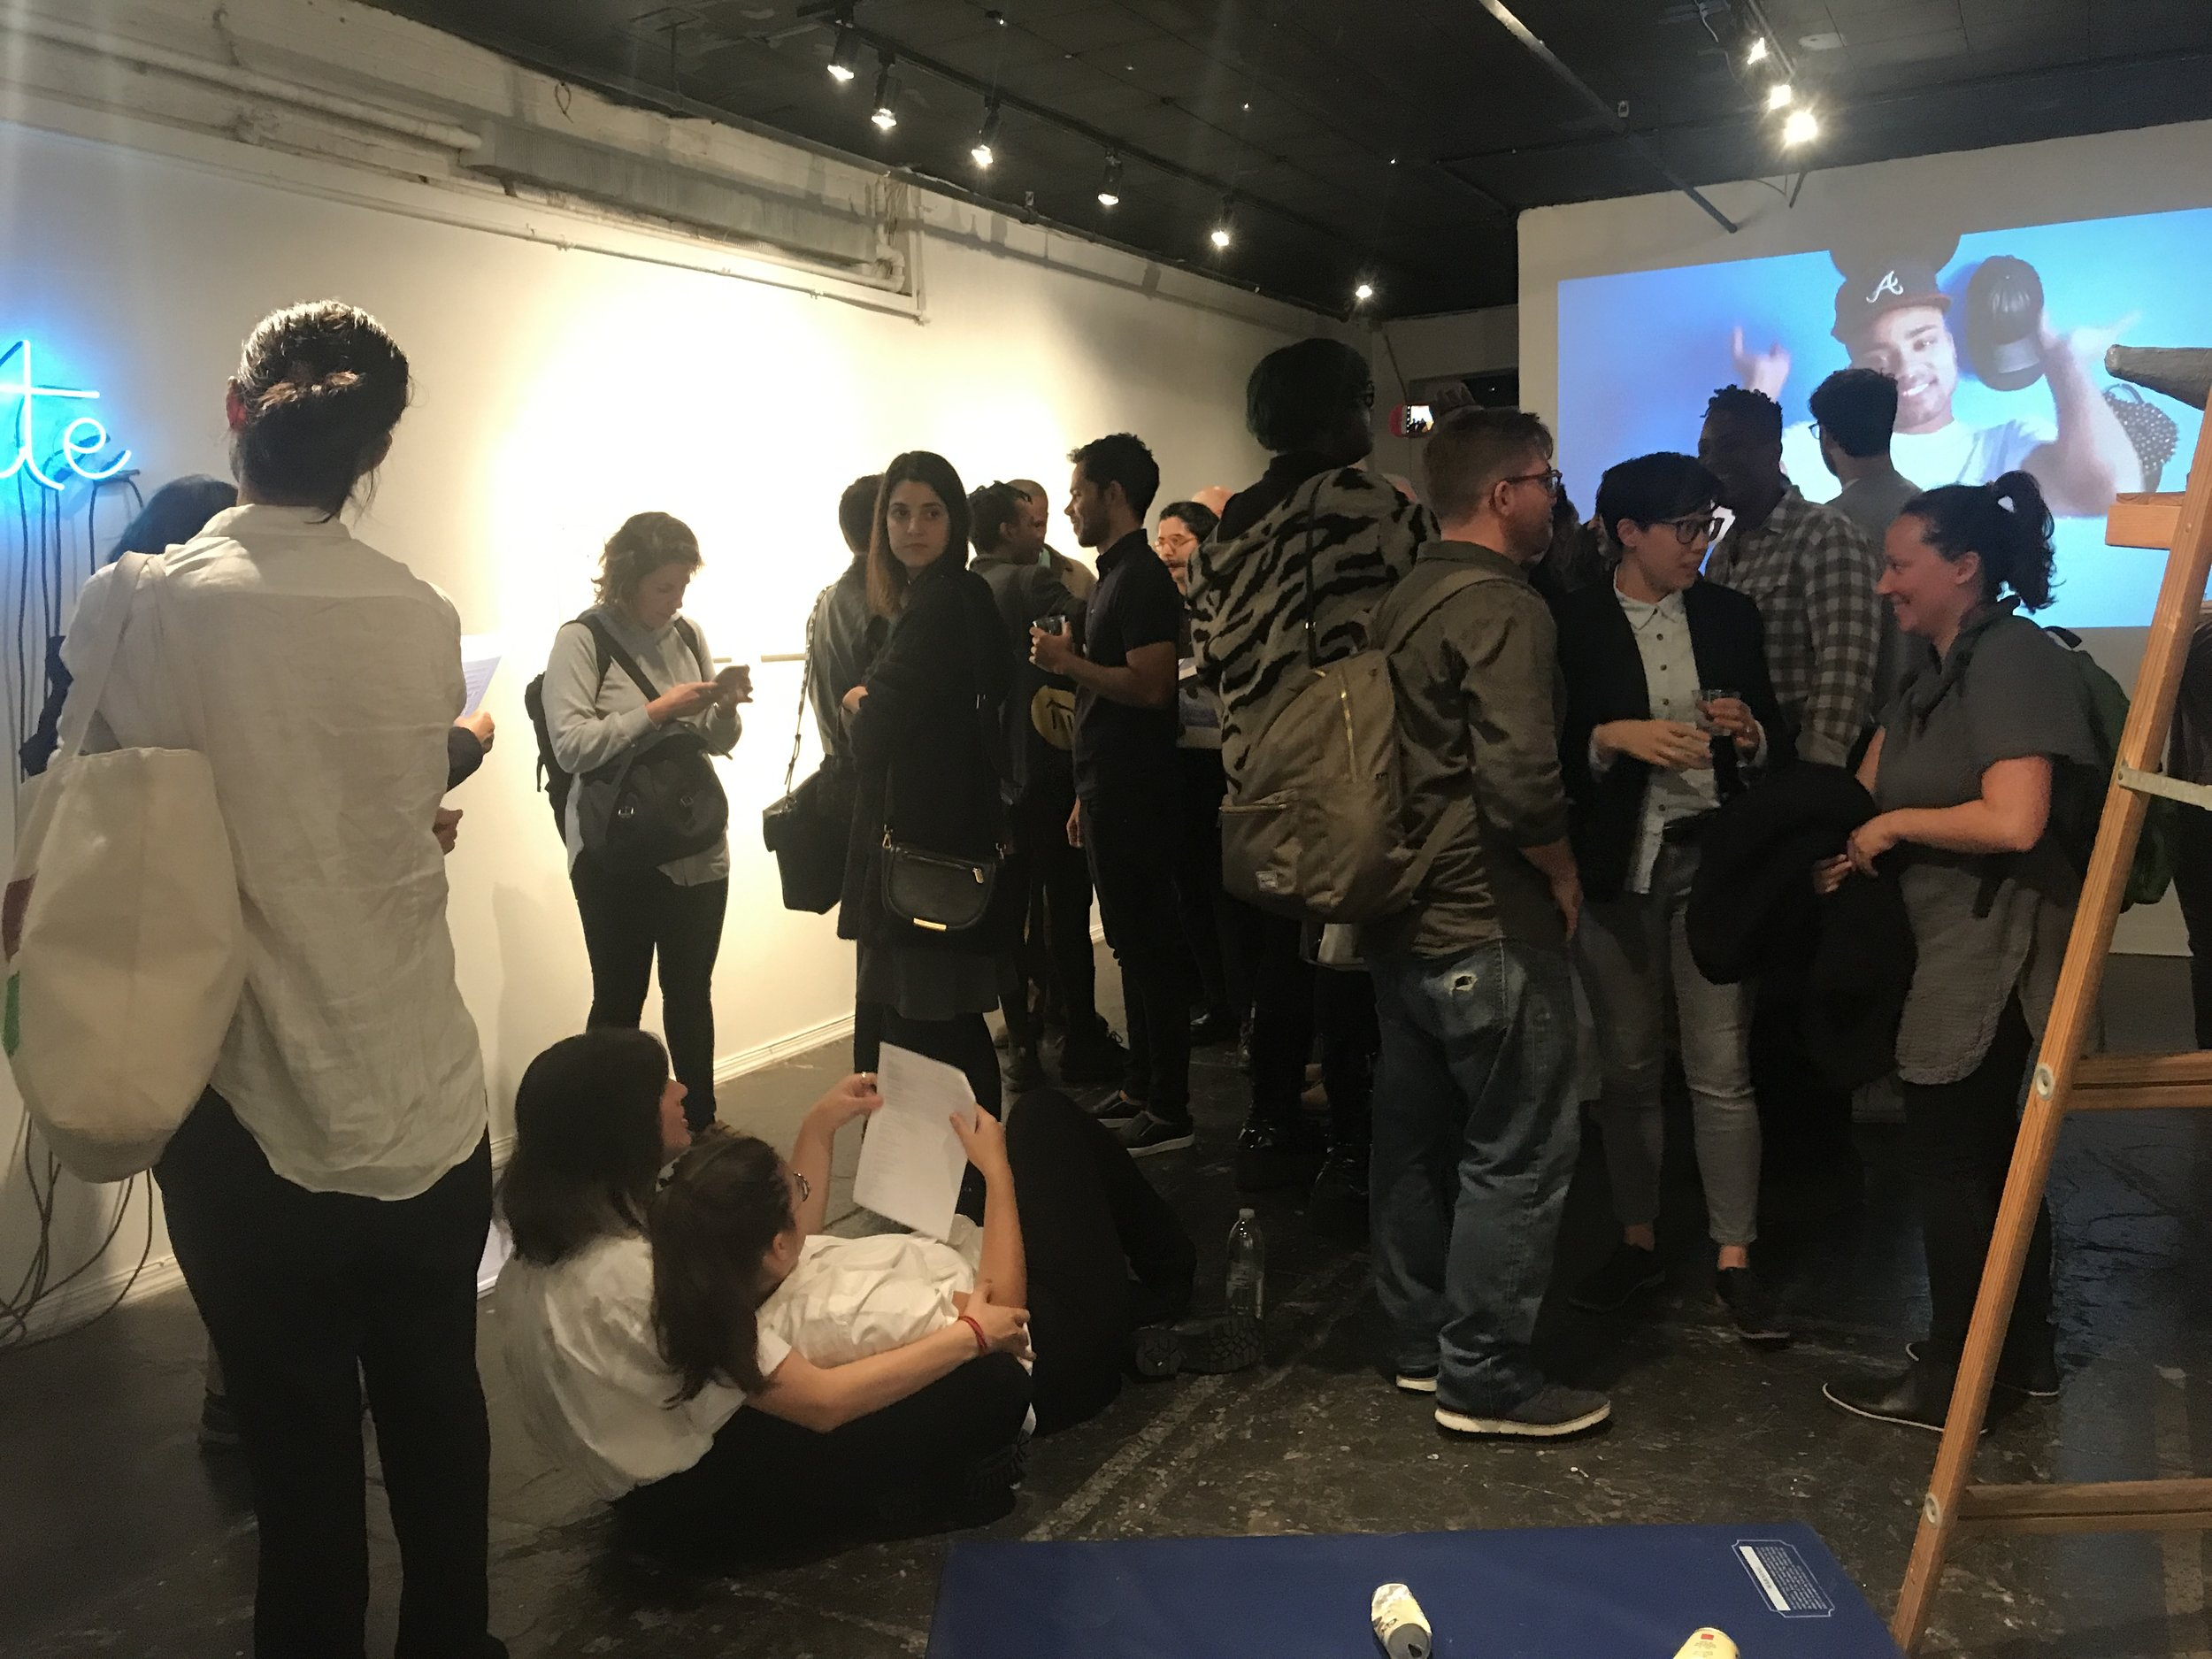 QAM 2016-2017 Annual Exhibition Opening Reception 02 (Photo by Vanessa Haroutunian)